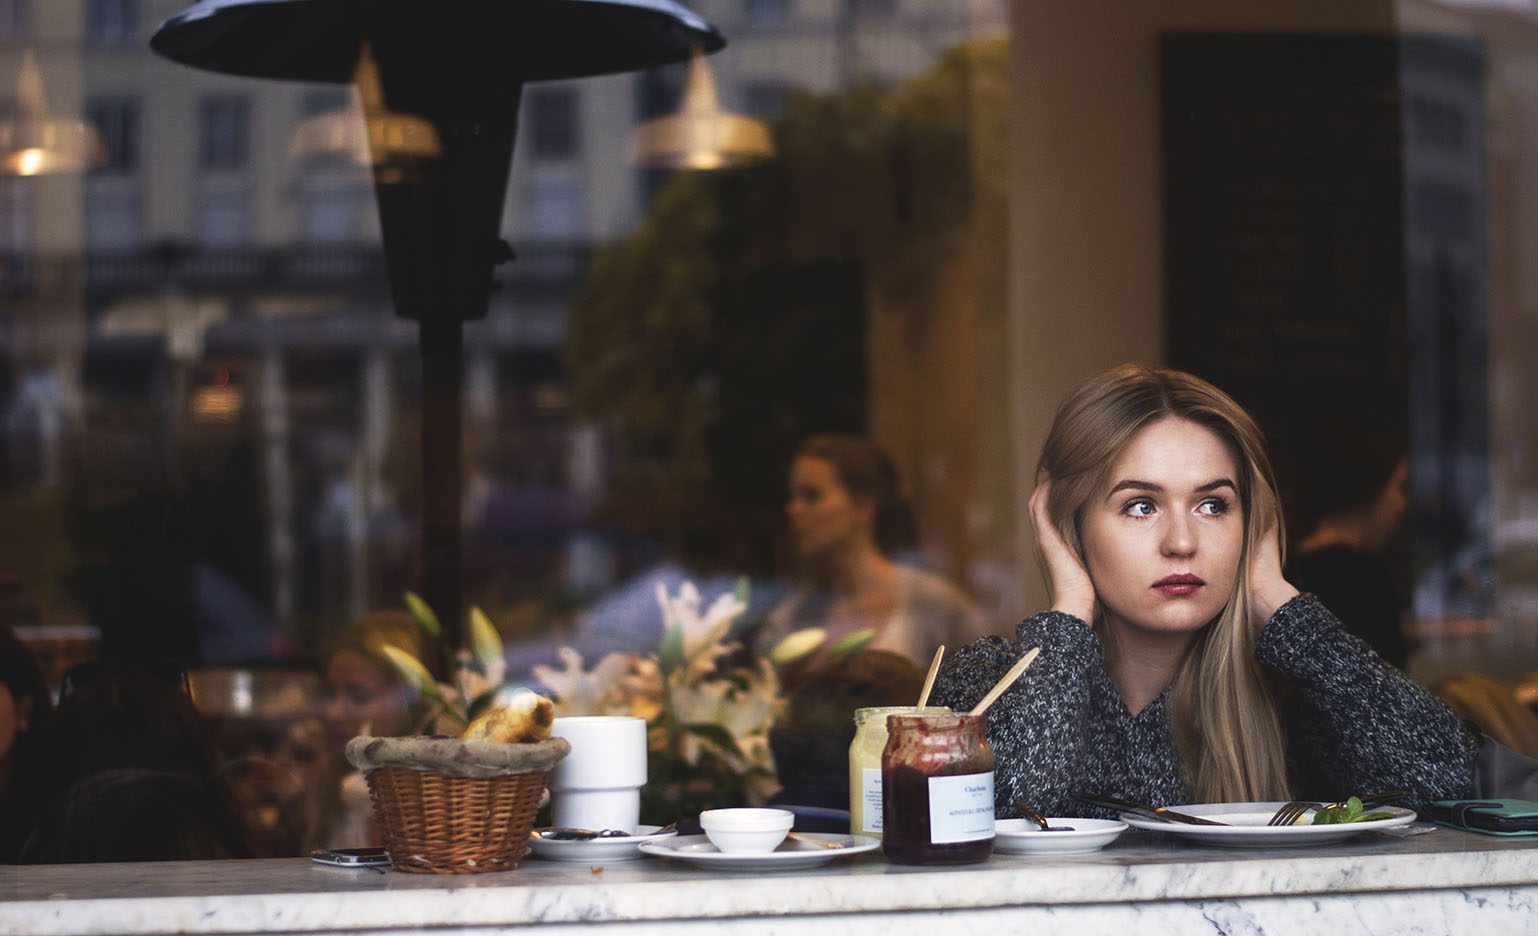 Woman wondering if she should freeze her eggs while staring out the window